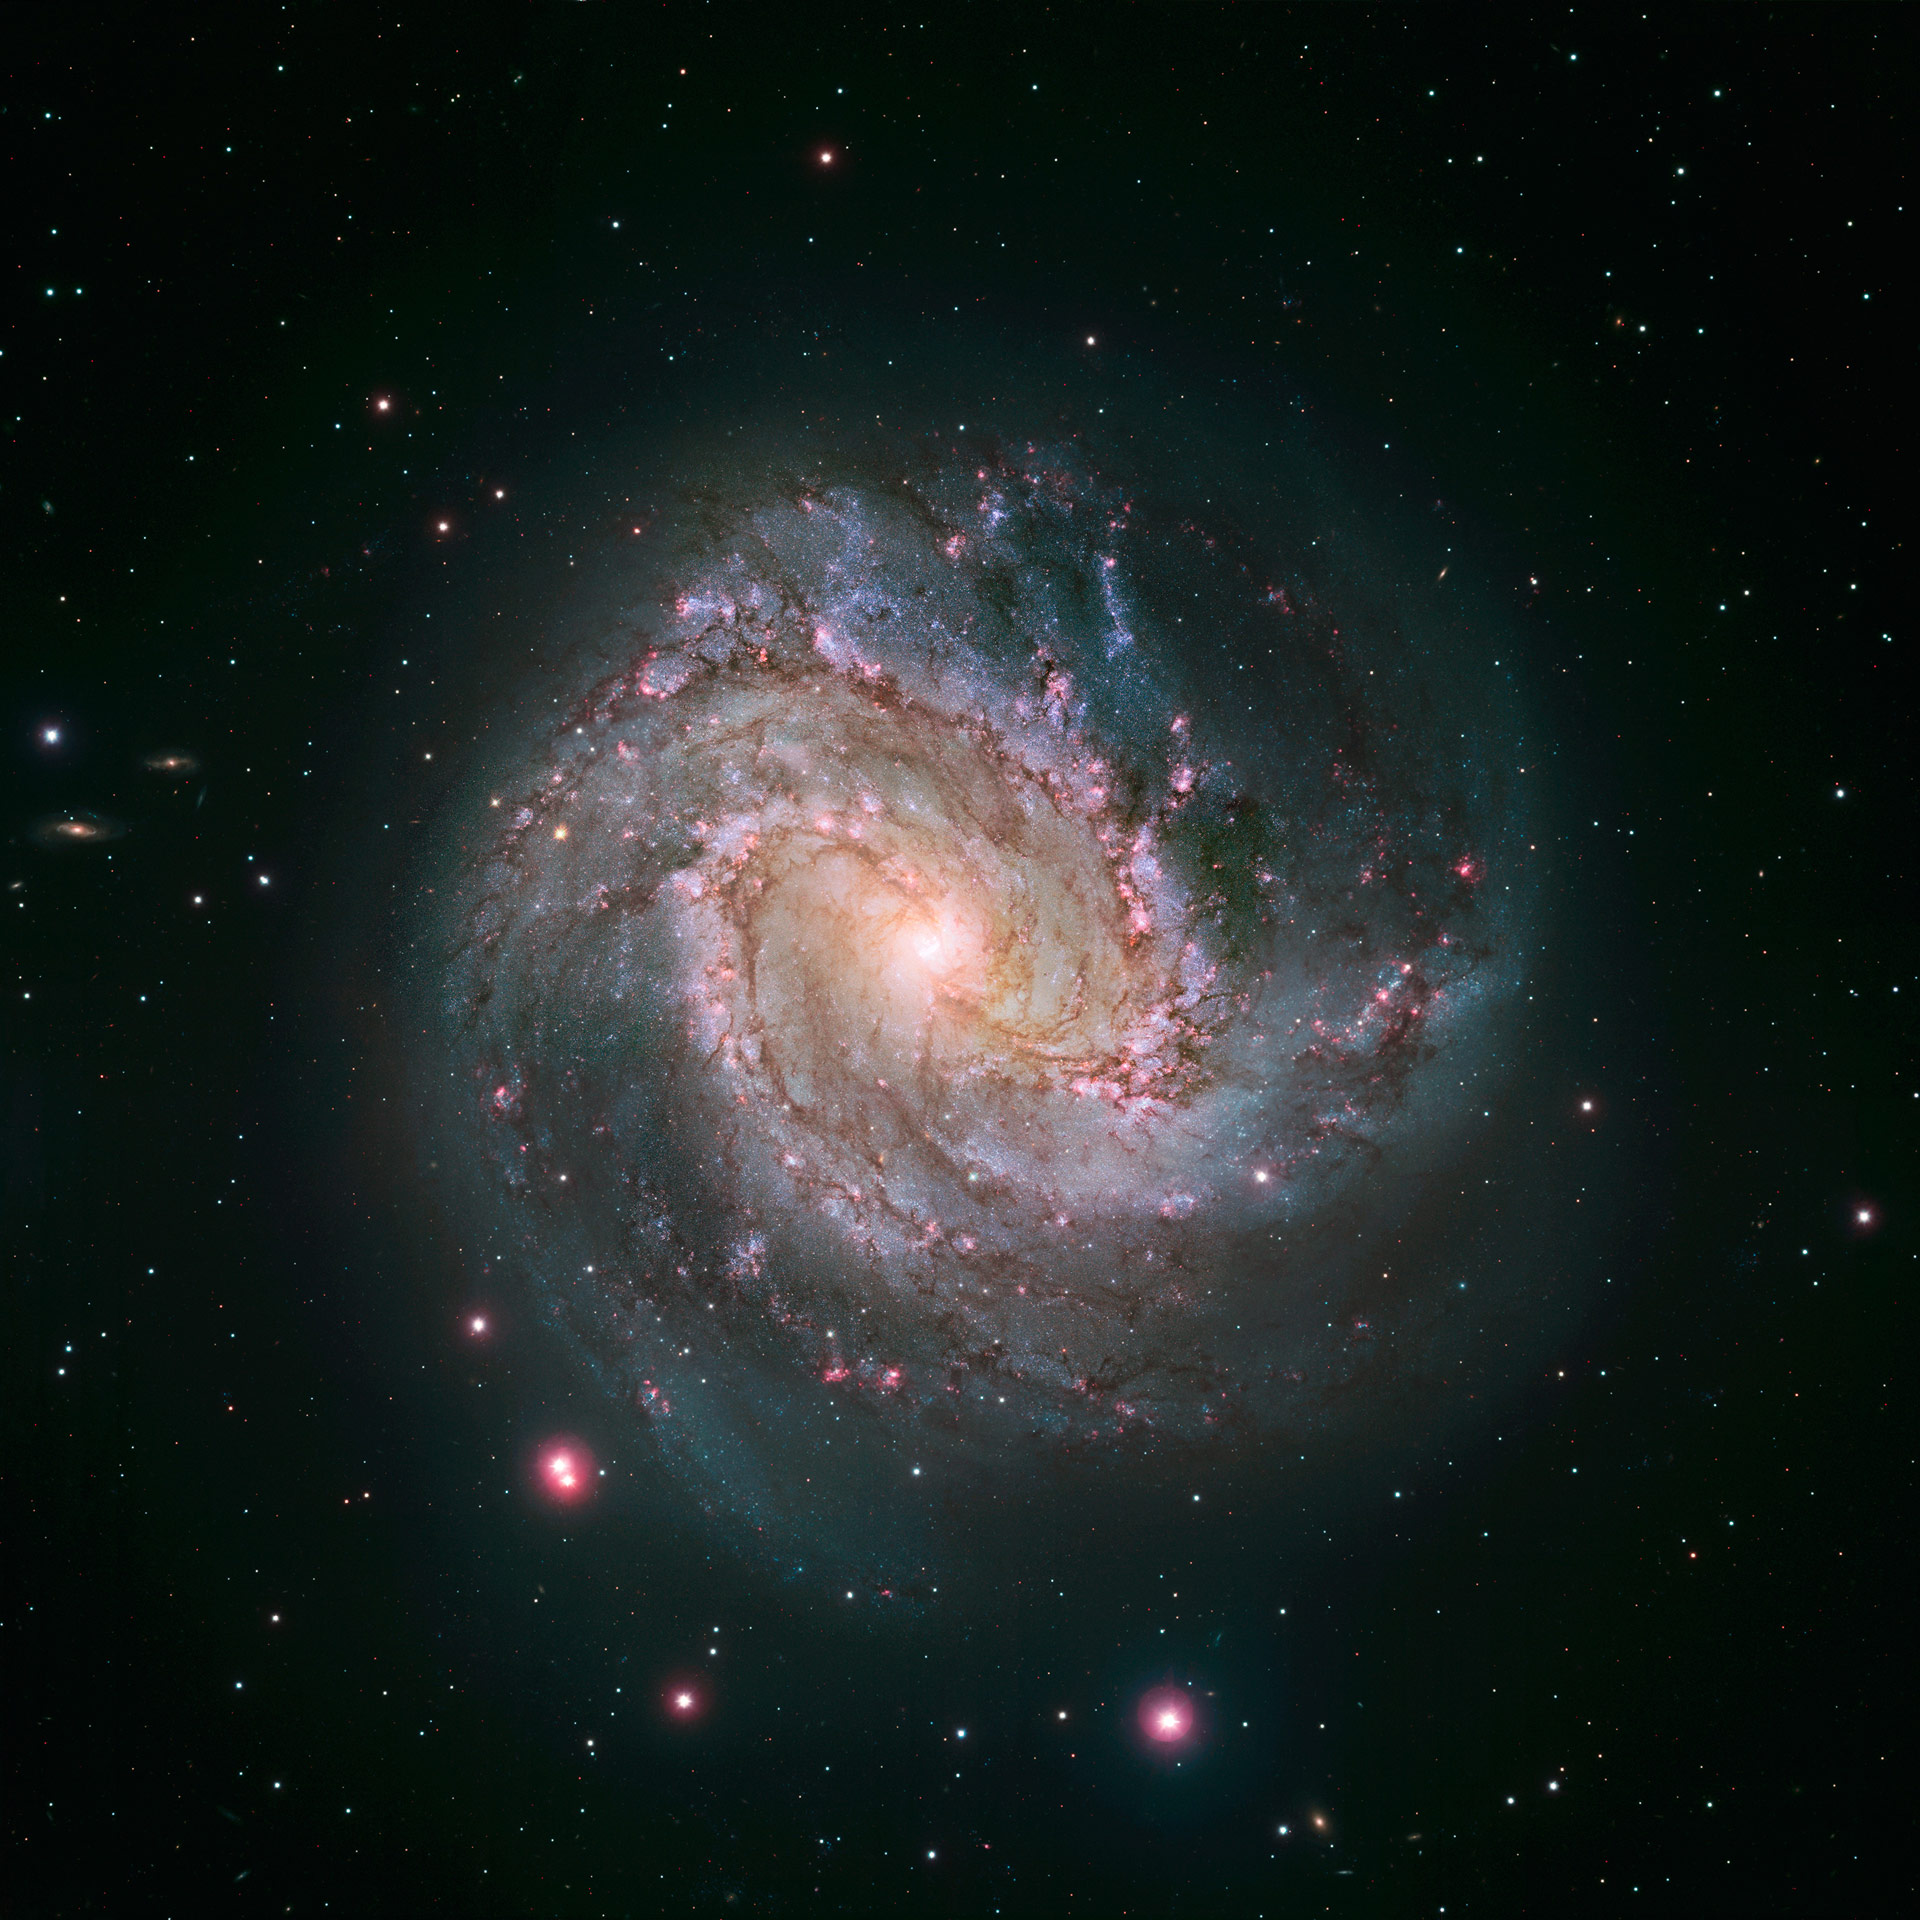 New Hubble Image of Spiral Galaxy Messier 83